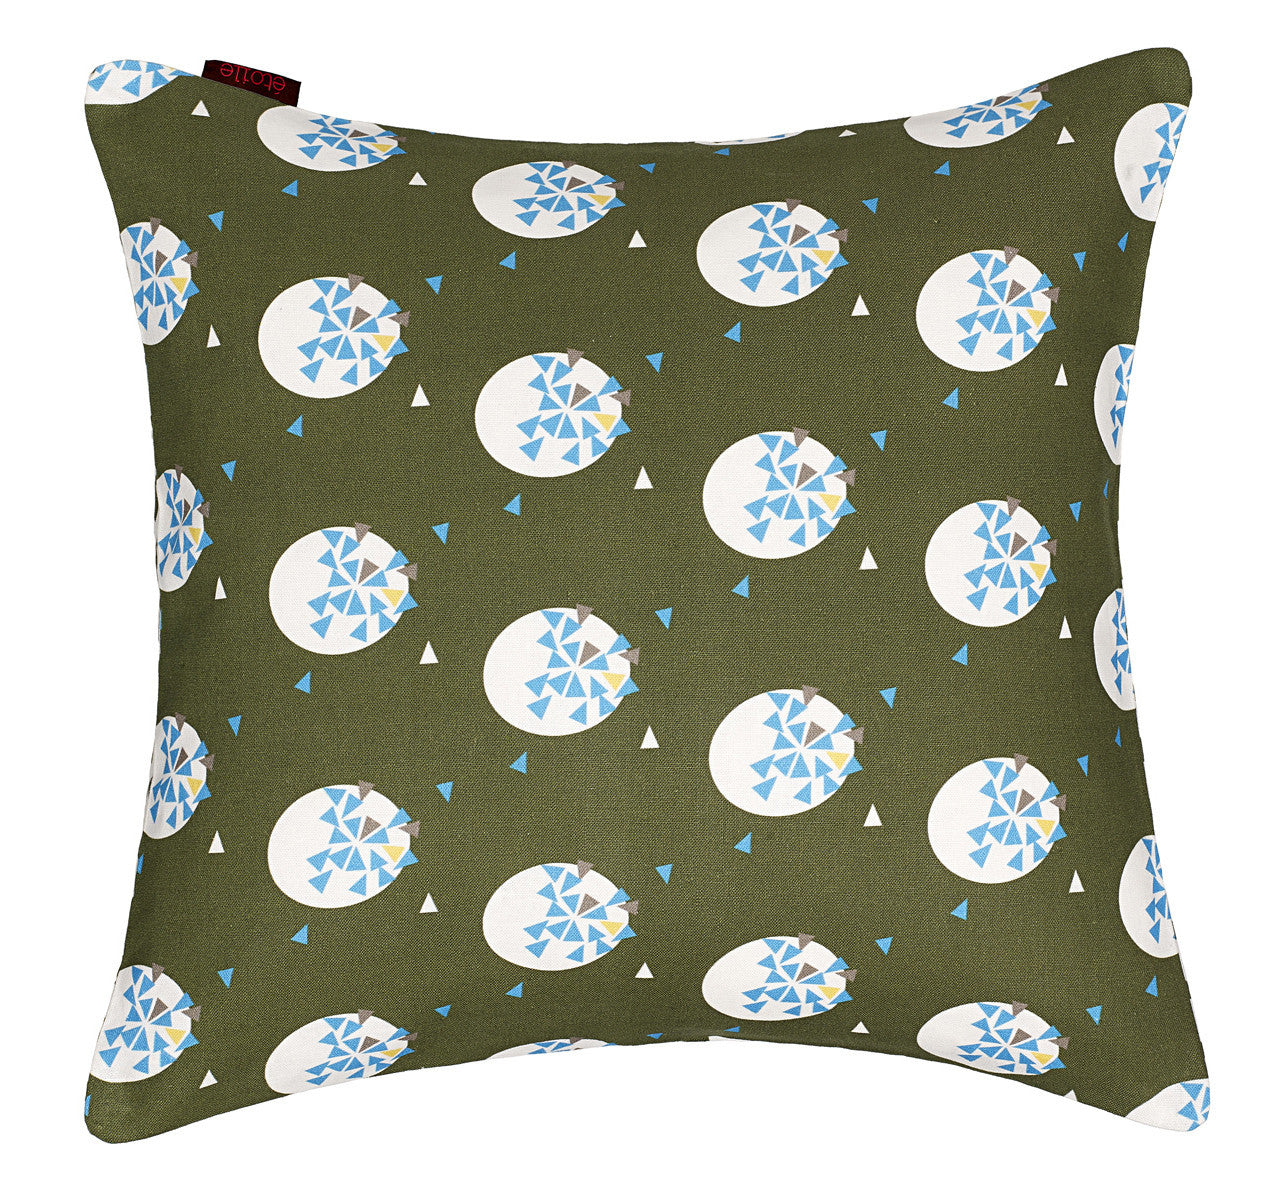 "Ceramic Geometric Pattern Cotton Linen Throw Pillow on Olive Green 45x45cm (18x18"") canada USA"